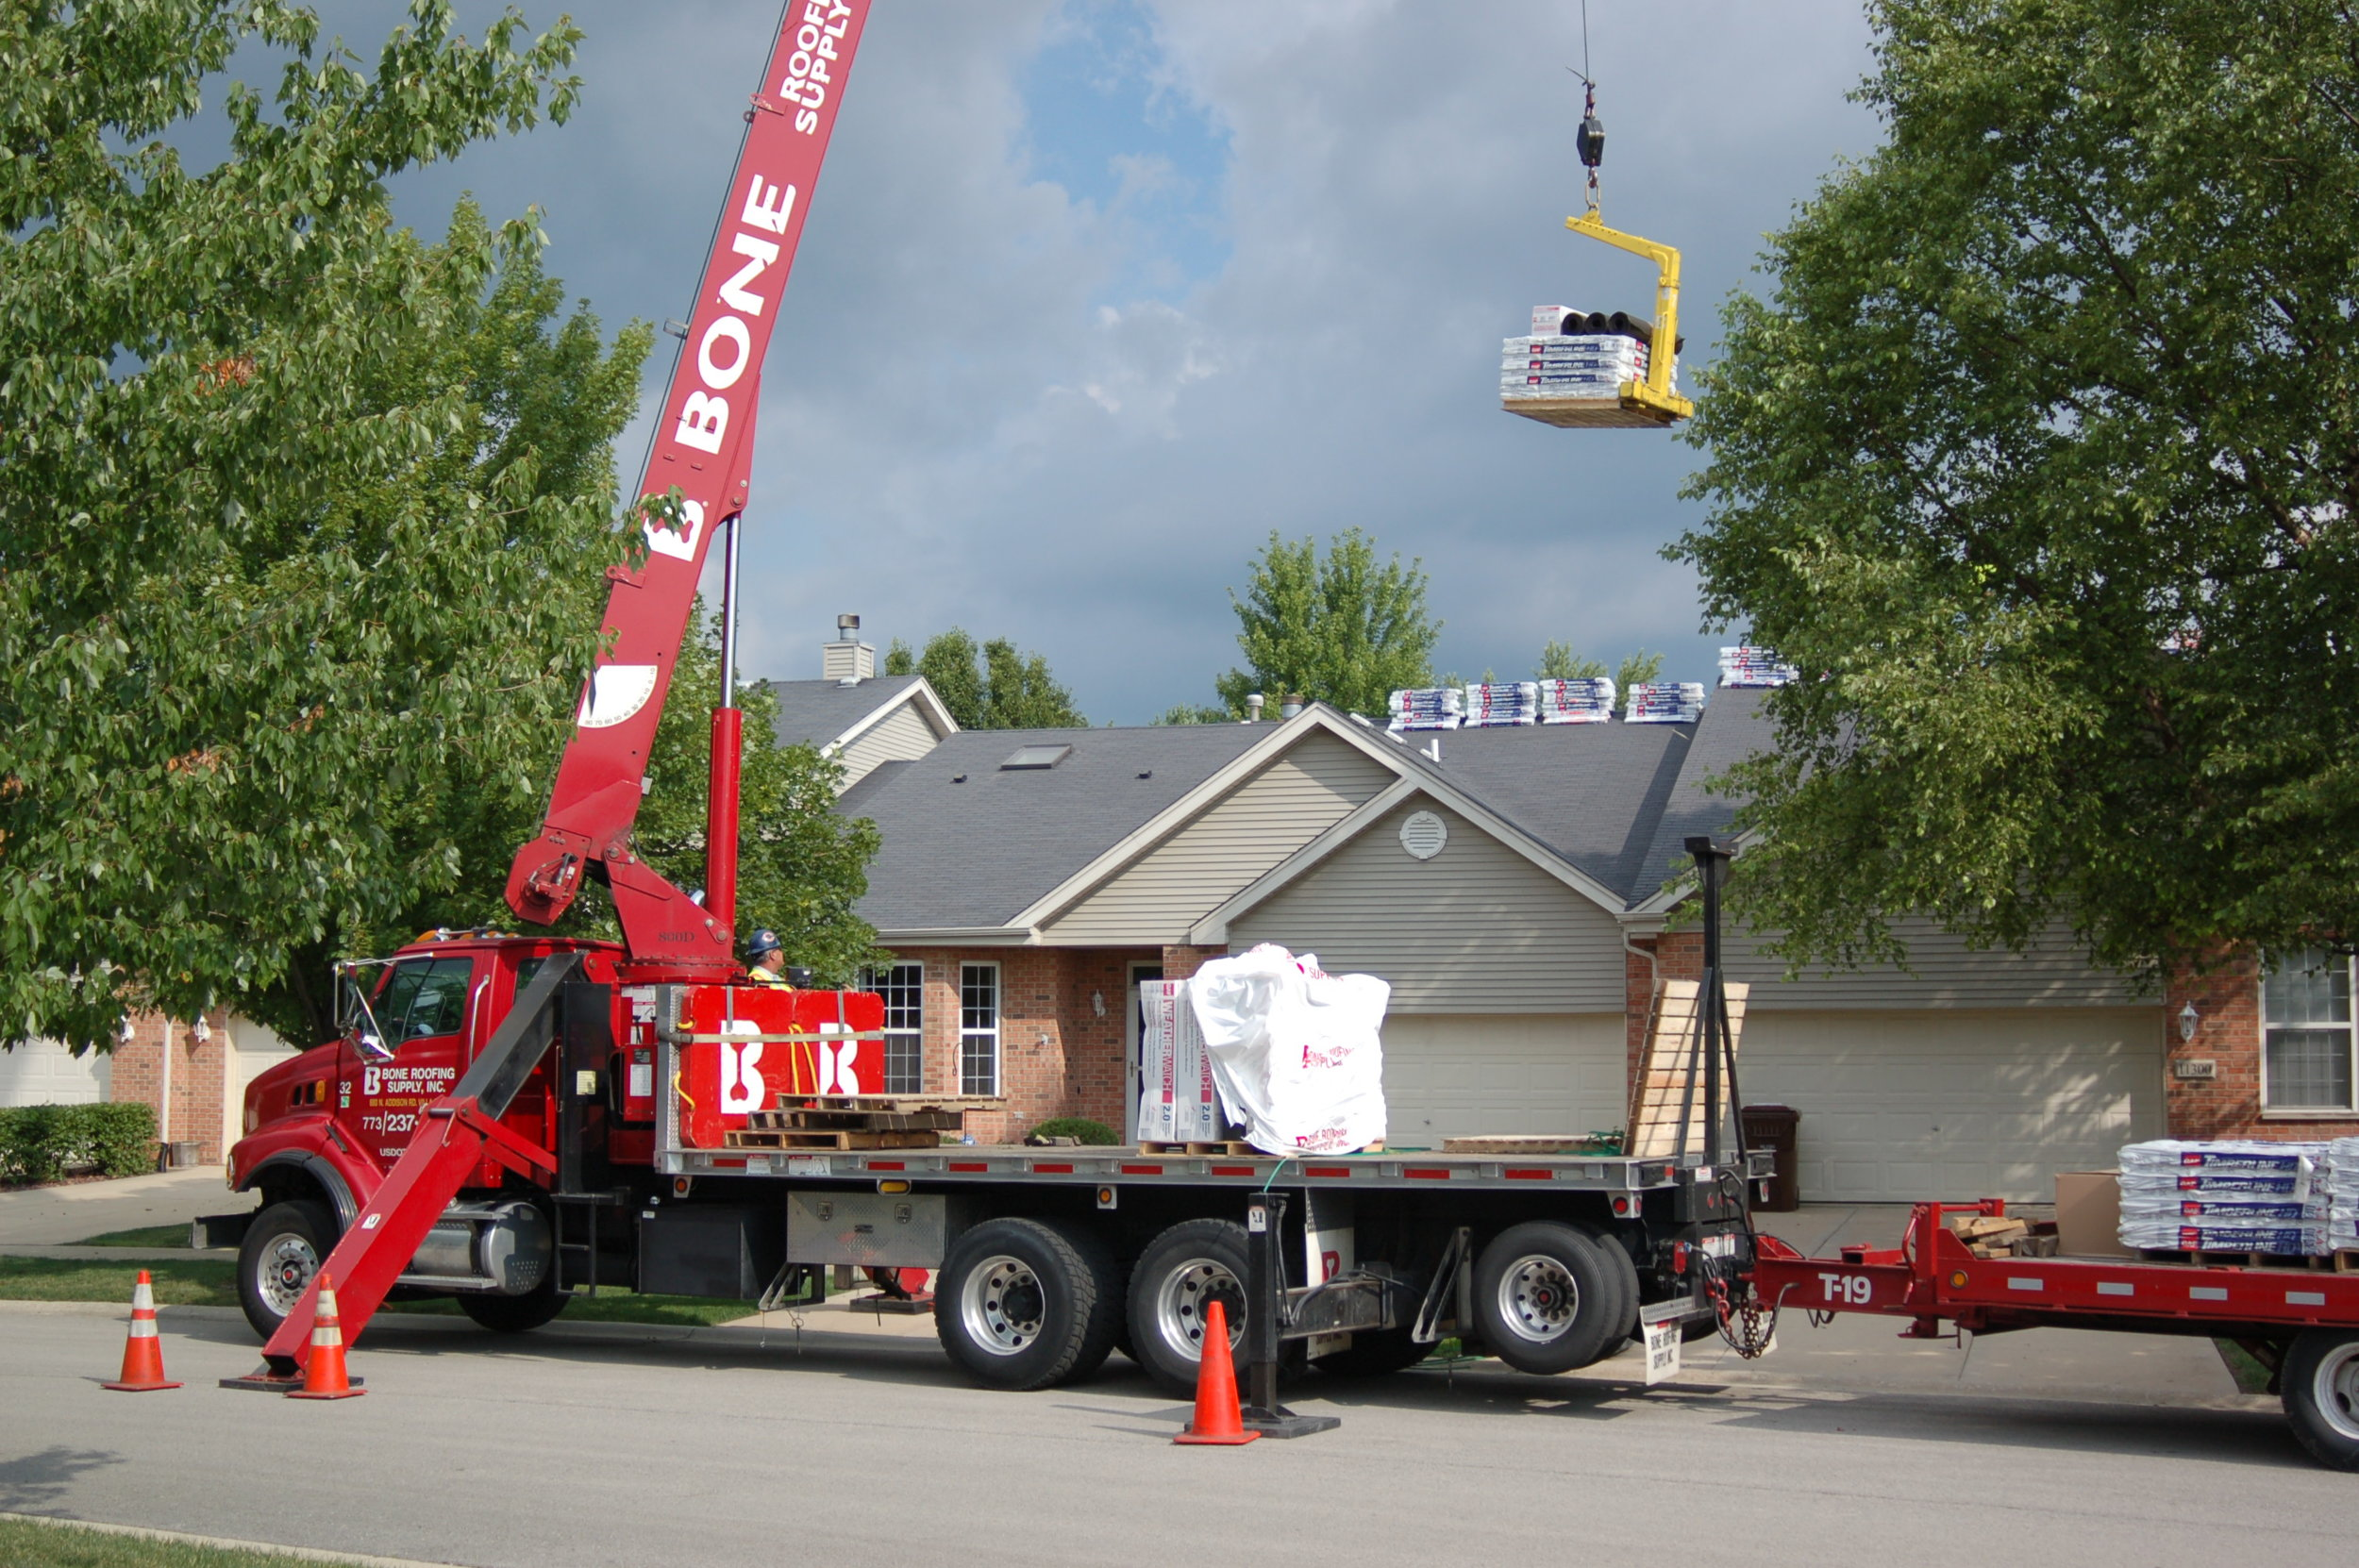 Direct Sales - Direct sales are products shipped by our vendors directly to our customers. We are happy to coordinate direct product orders from our customers to our vendors. Apart from our competition, we offer our trucks, cranes, and moffetts to help our contractor get that material to the roof. Our customer is always our top priority, no matter who is hauling the material.